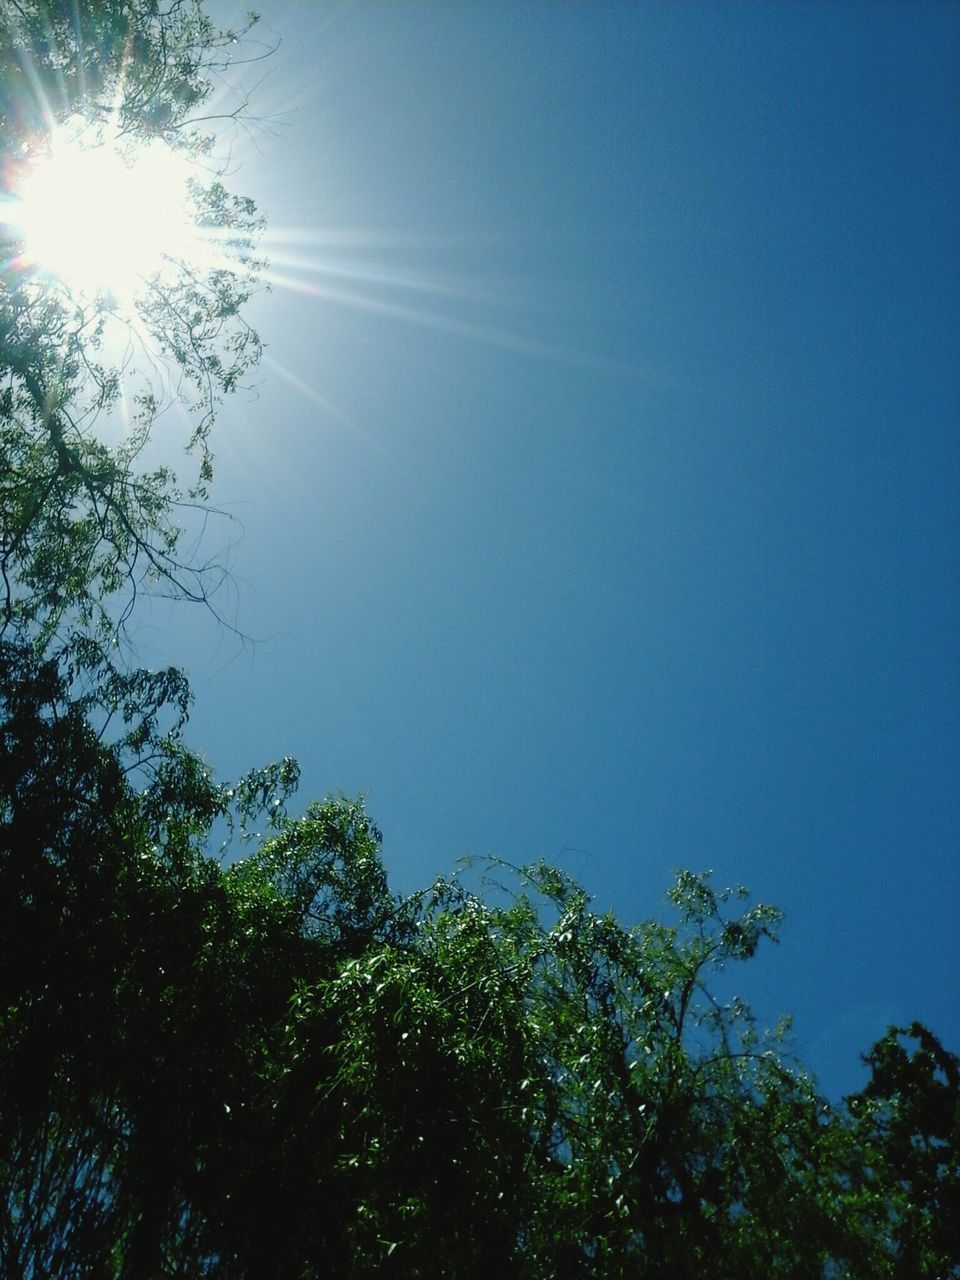 nature, sun, low angle view, tree, sunlight, beauty in nature, day, no people, sunshine, outdoors, sky